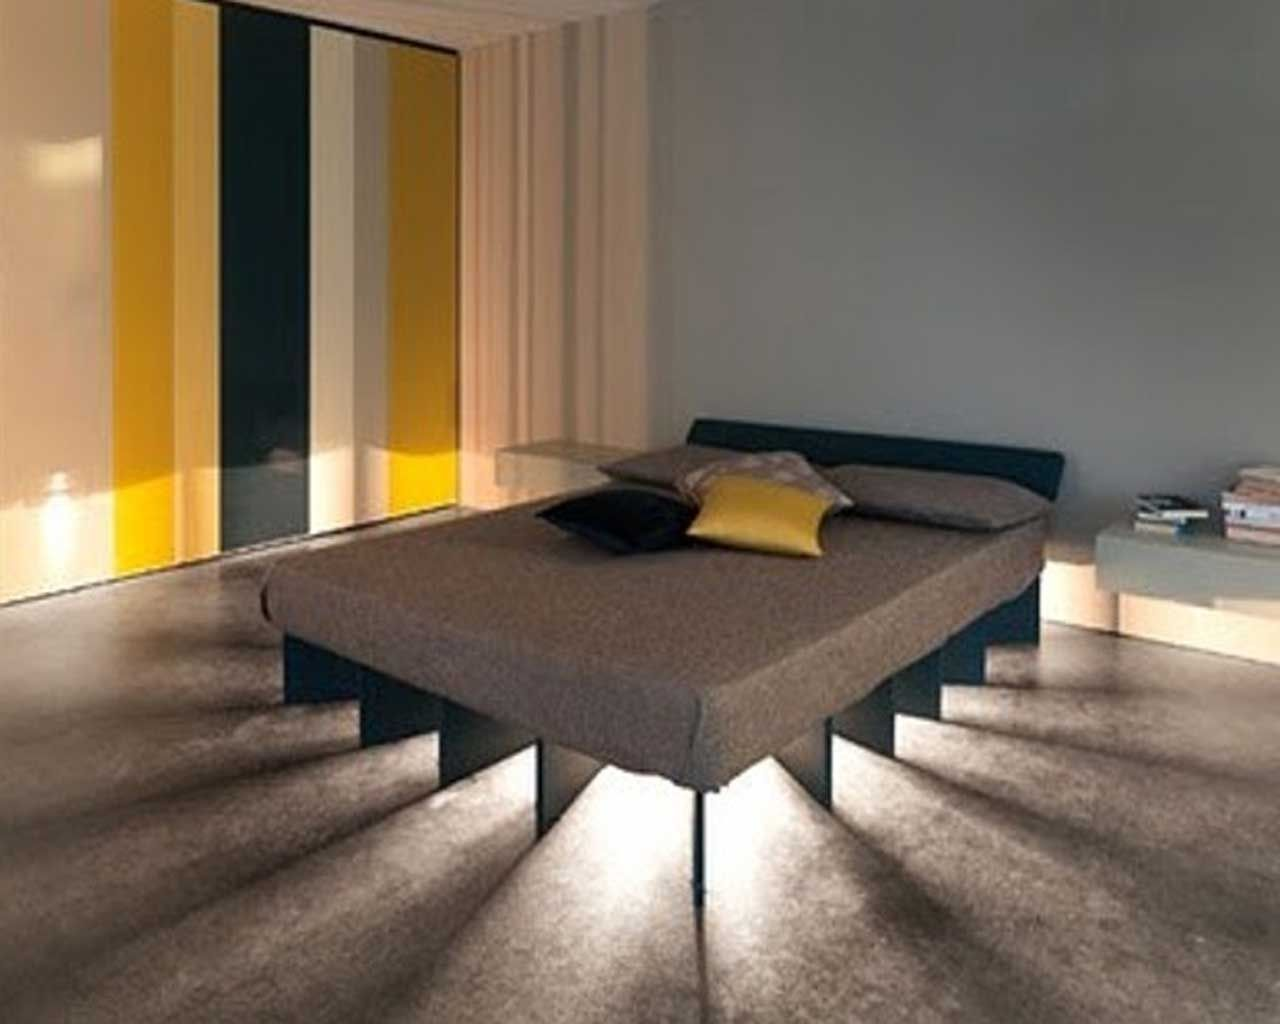 Cool Bedroom Lighting Ideas Bedroom Awesome Home Design For You - Cool bedroom lighting ideas